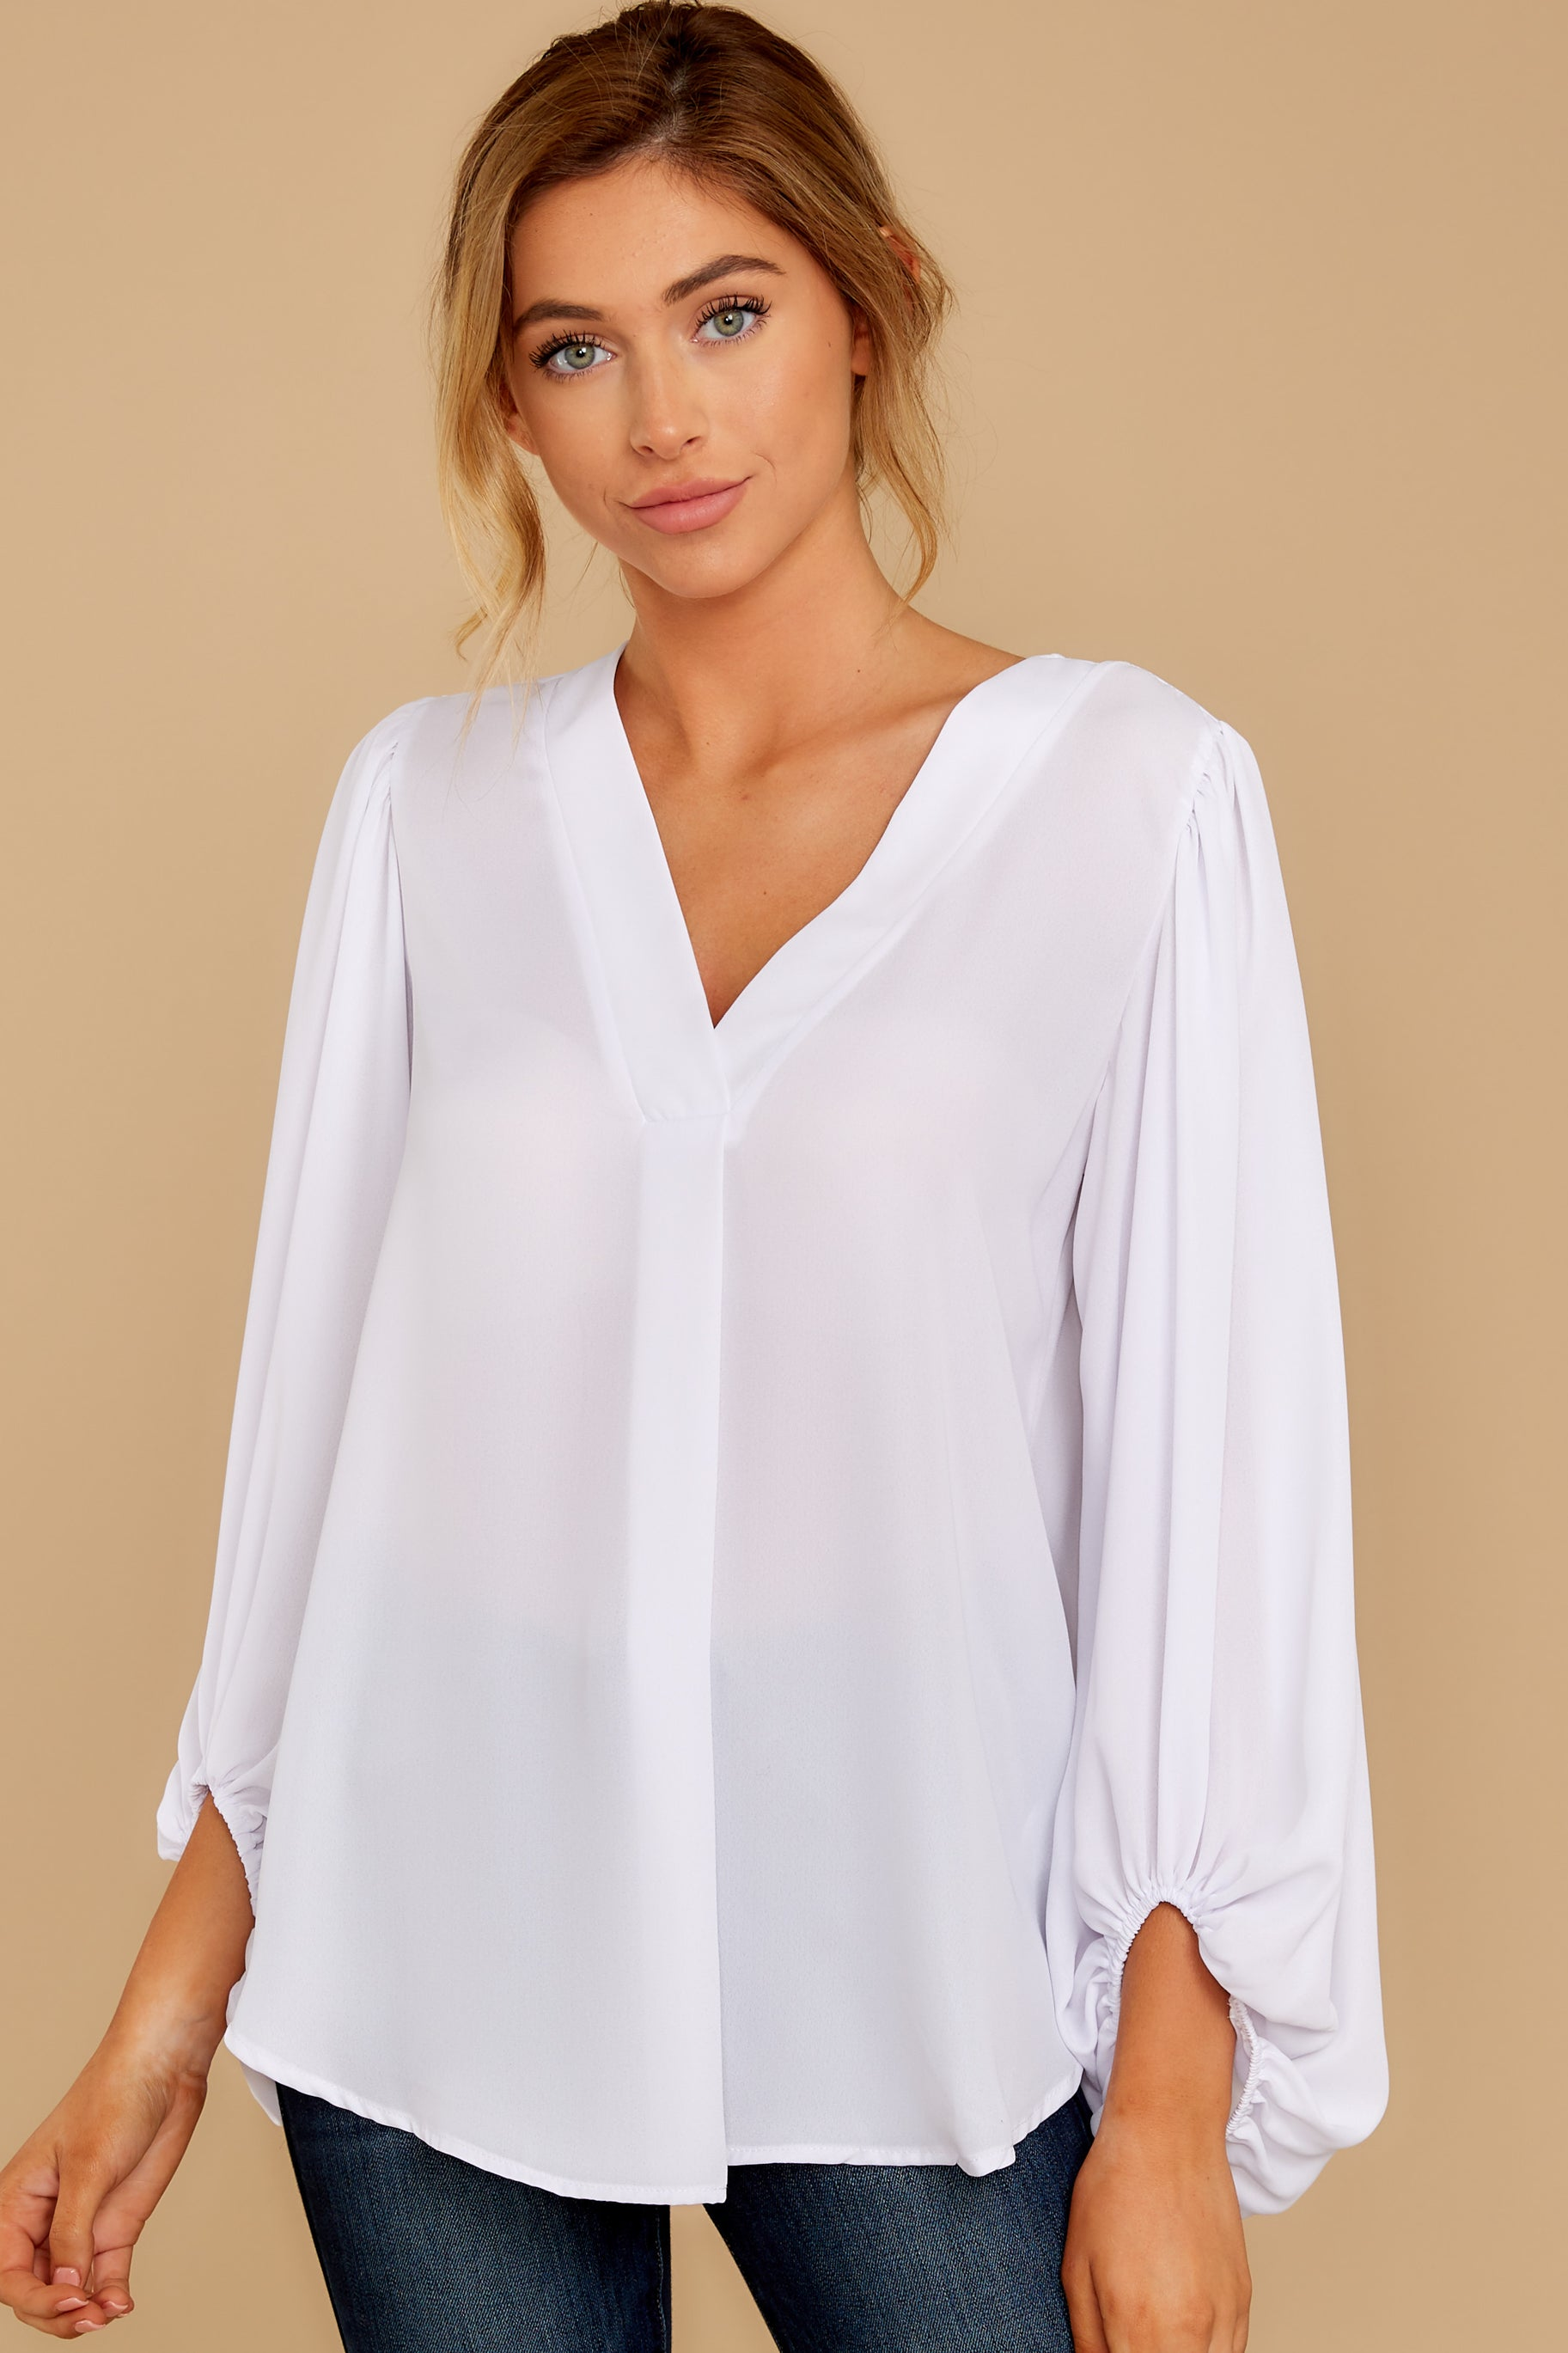 5 Around The Corner White Top at reddressboutique.com